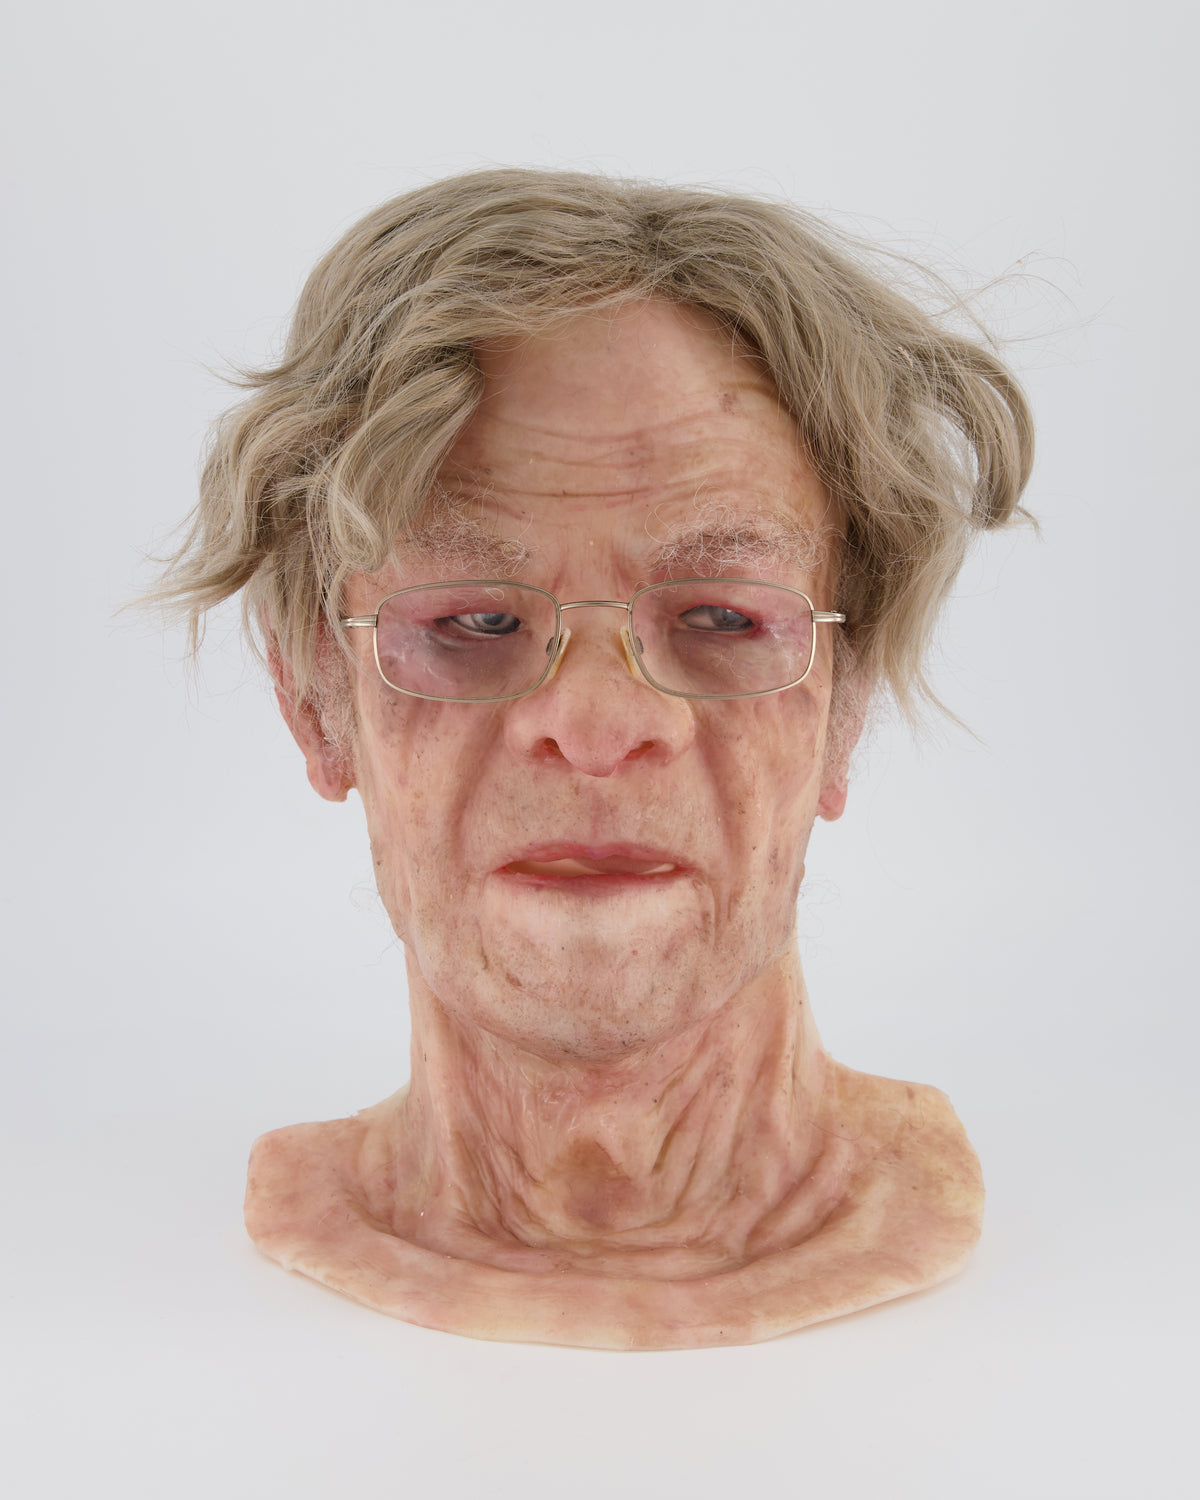 MM324 Mr. Straus - SimMan Facial Overlay